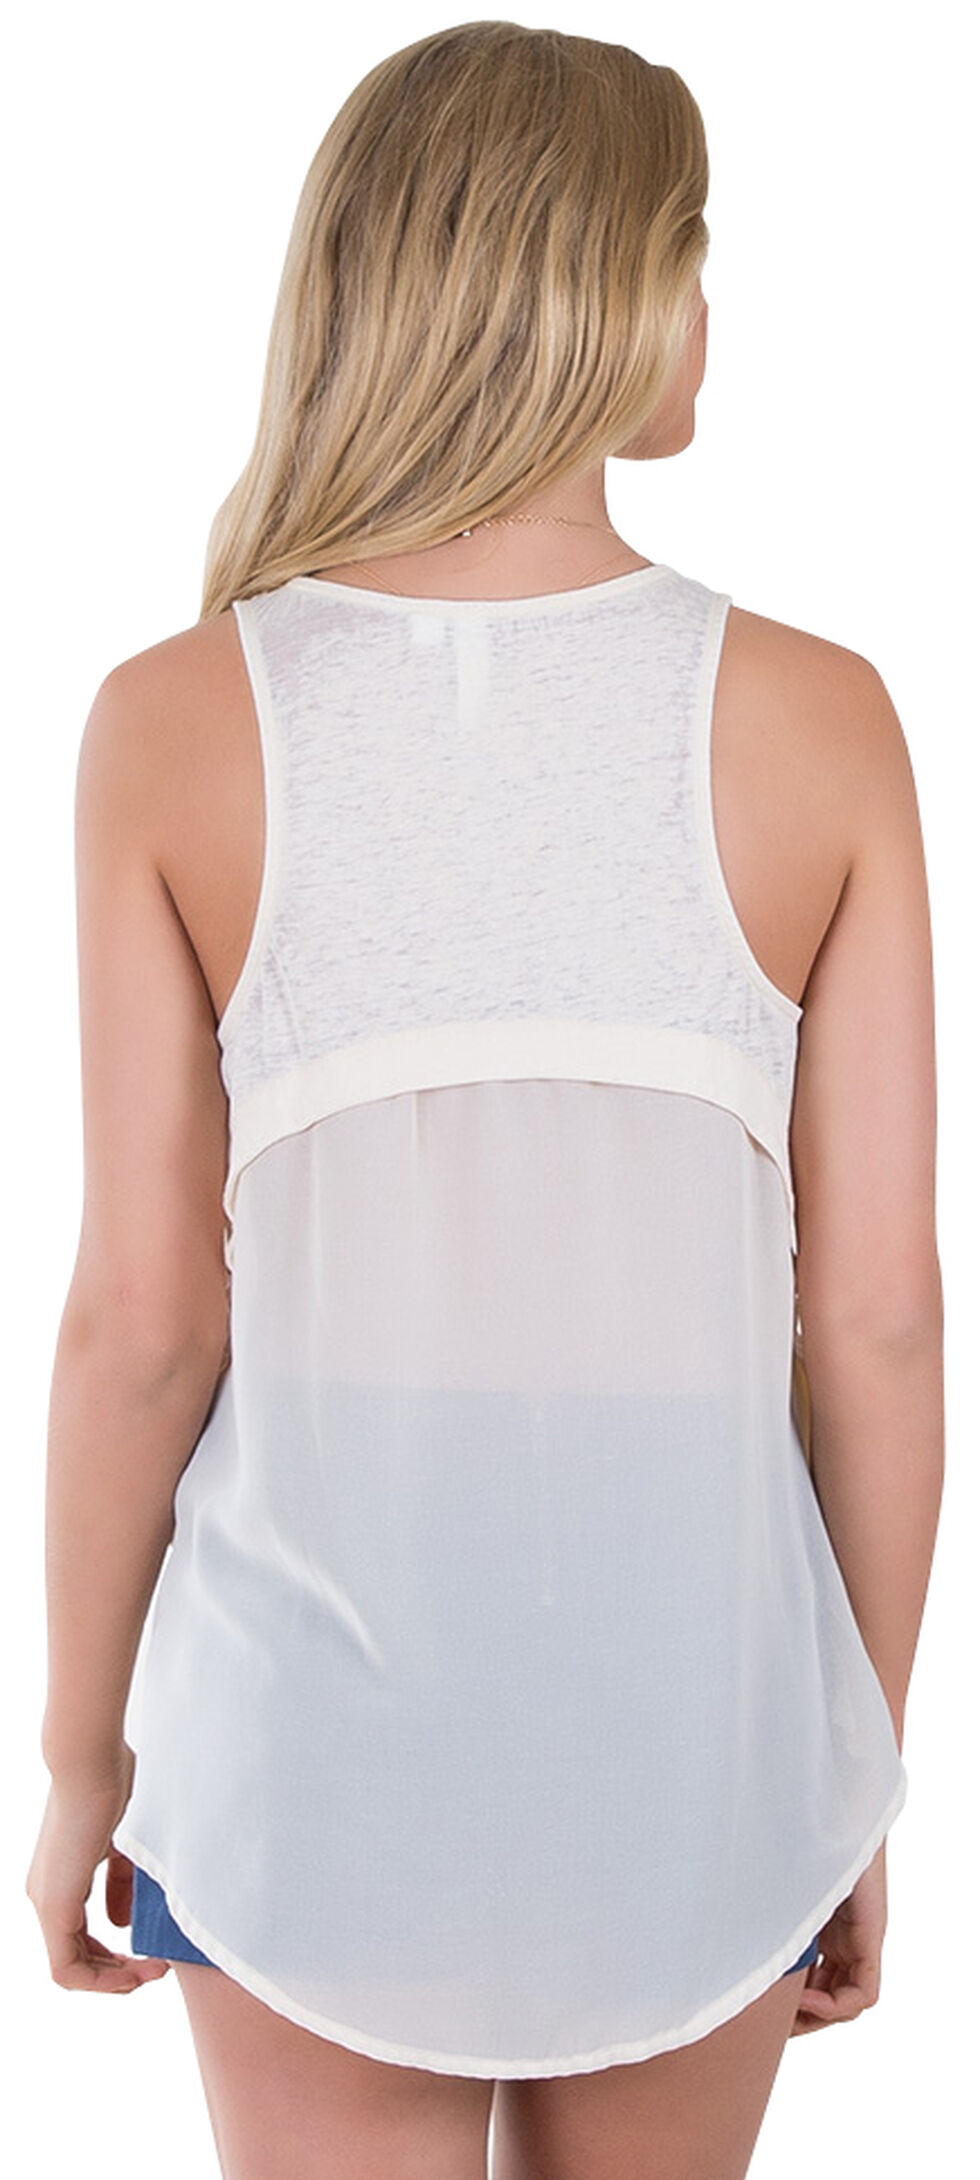 Others Follow Women's Be Mine Heart Cream Tank Top , Sand, hi-res